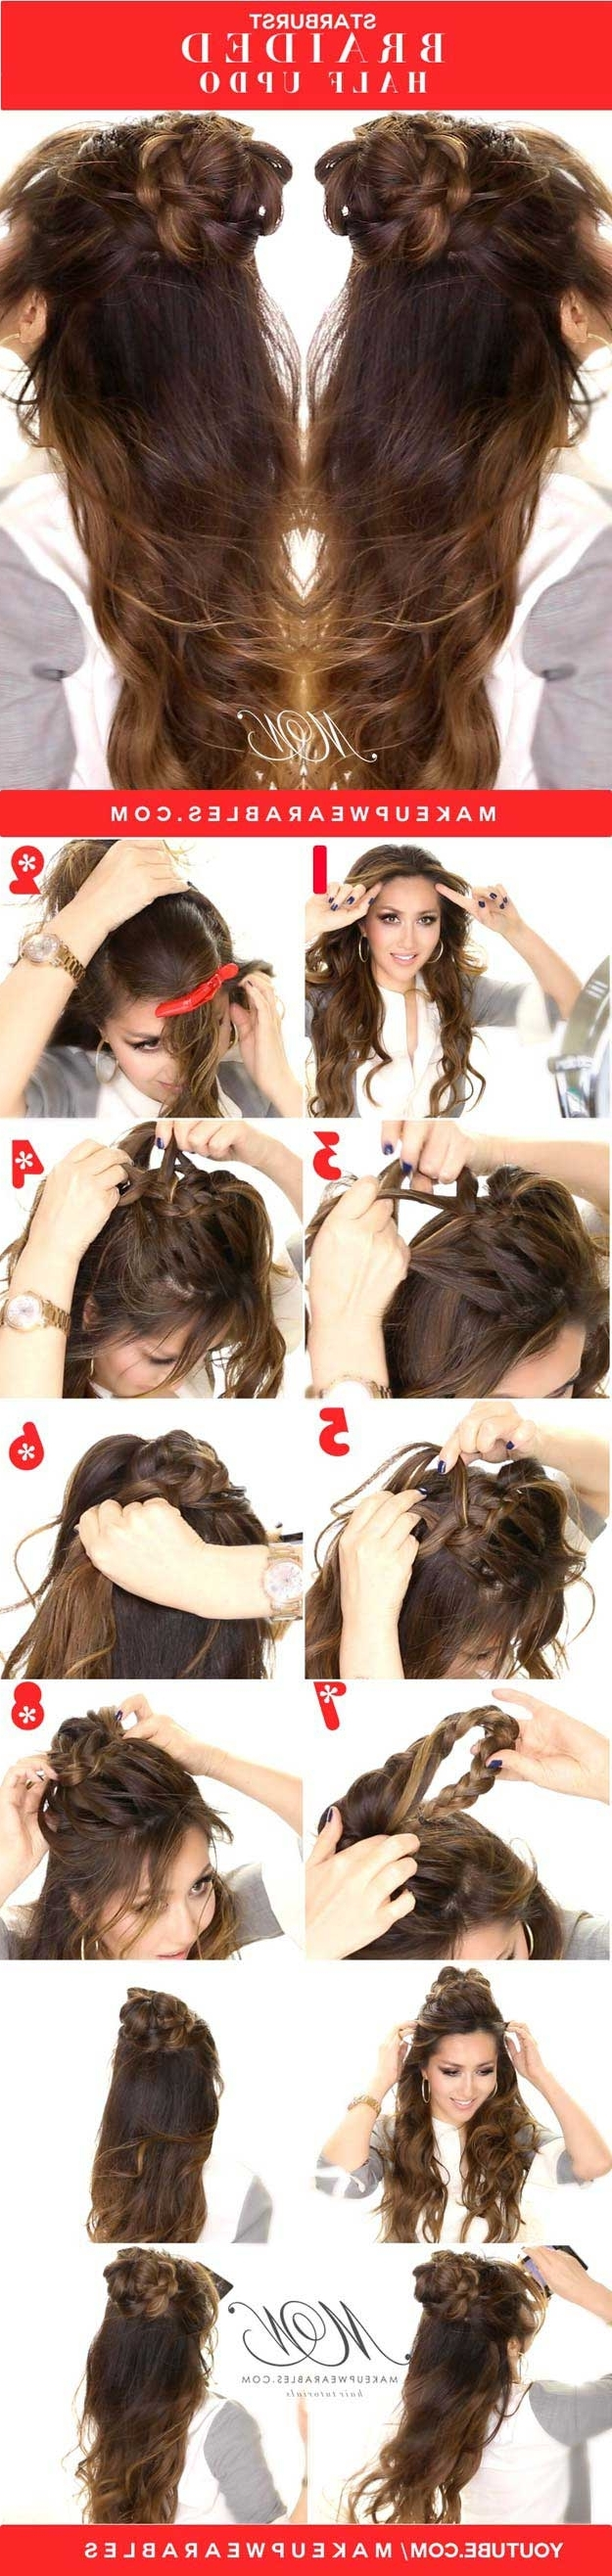 31 Amazing Half Up Half Down Hairstyles For Long Hair – The Goddess With Regard To Professional Updo Hairstyles For Long Hair (View 6 of 15)